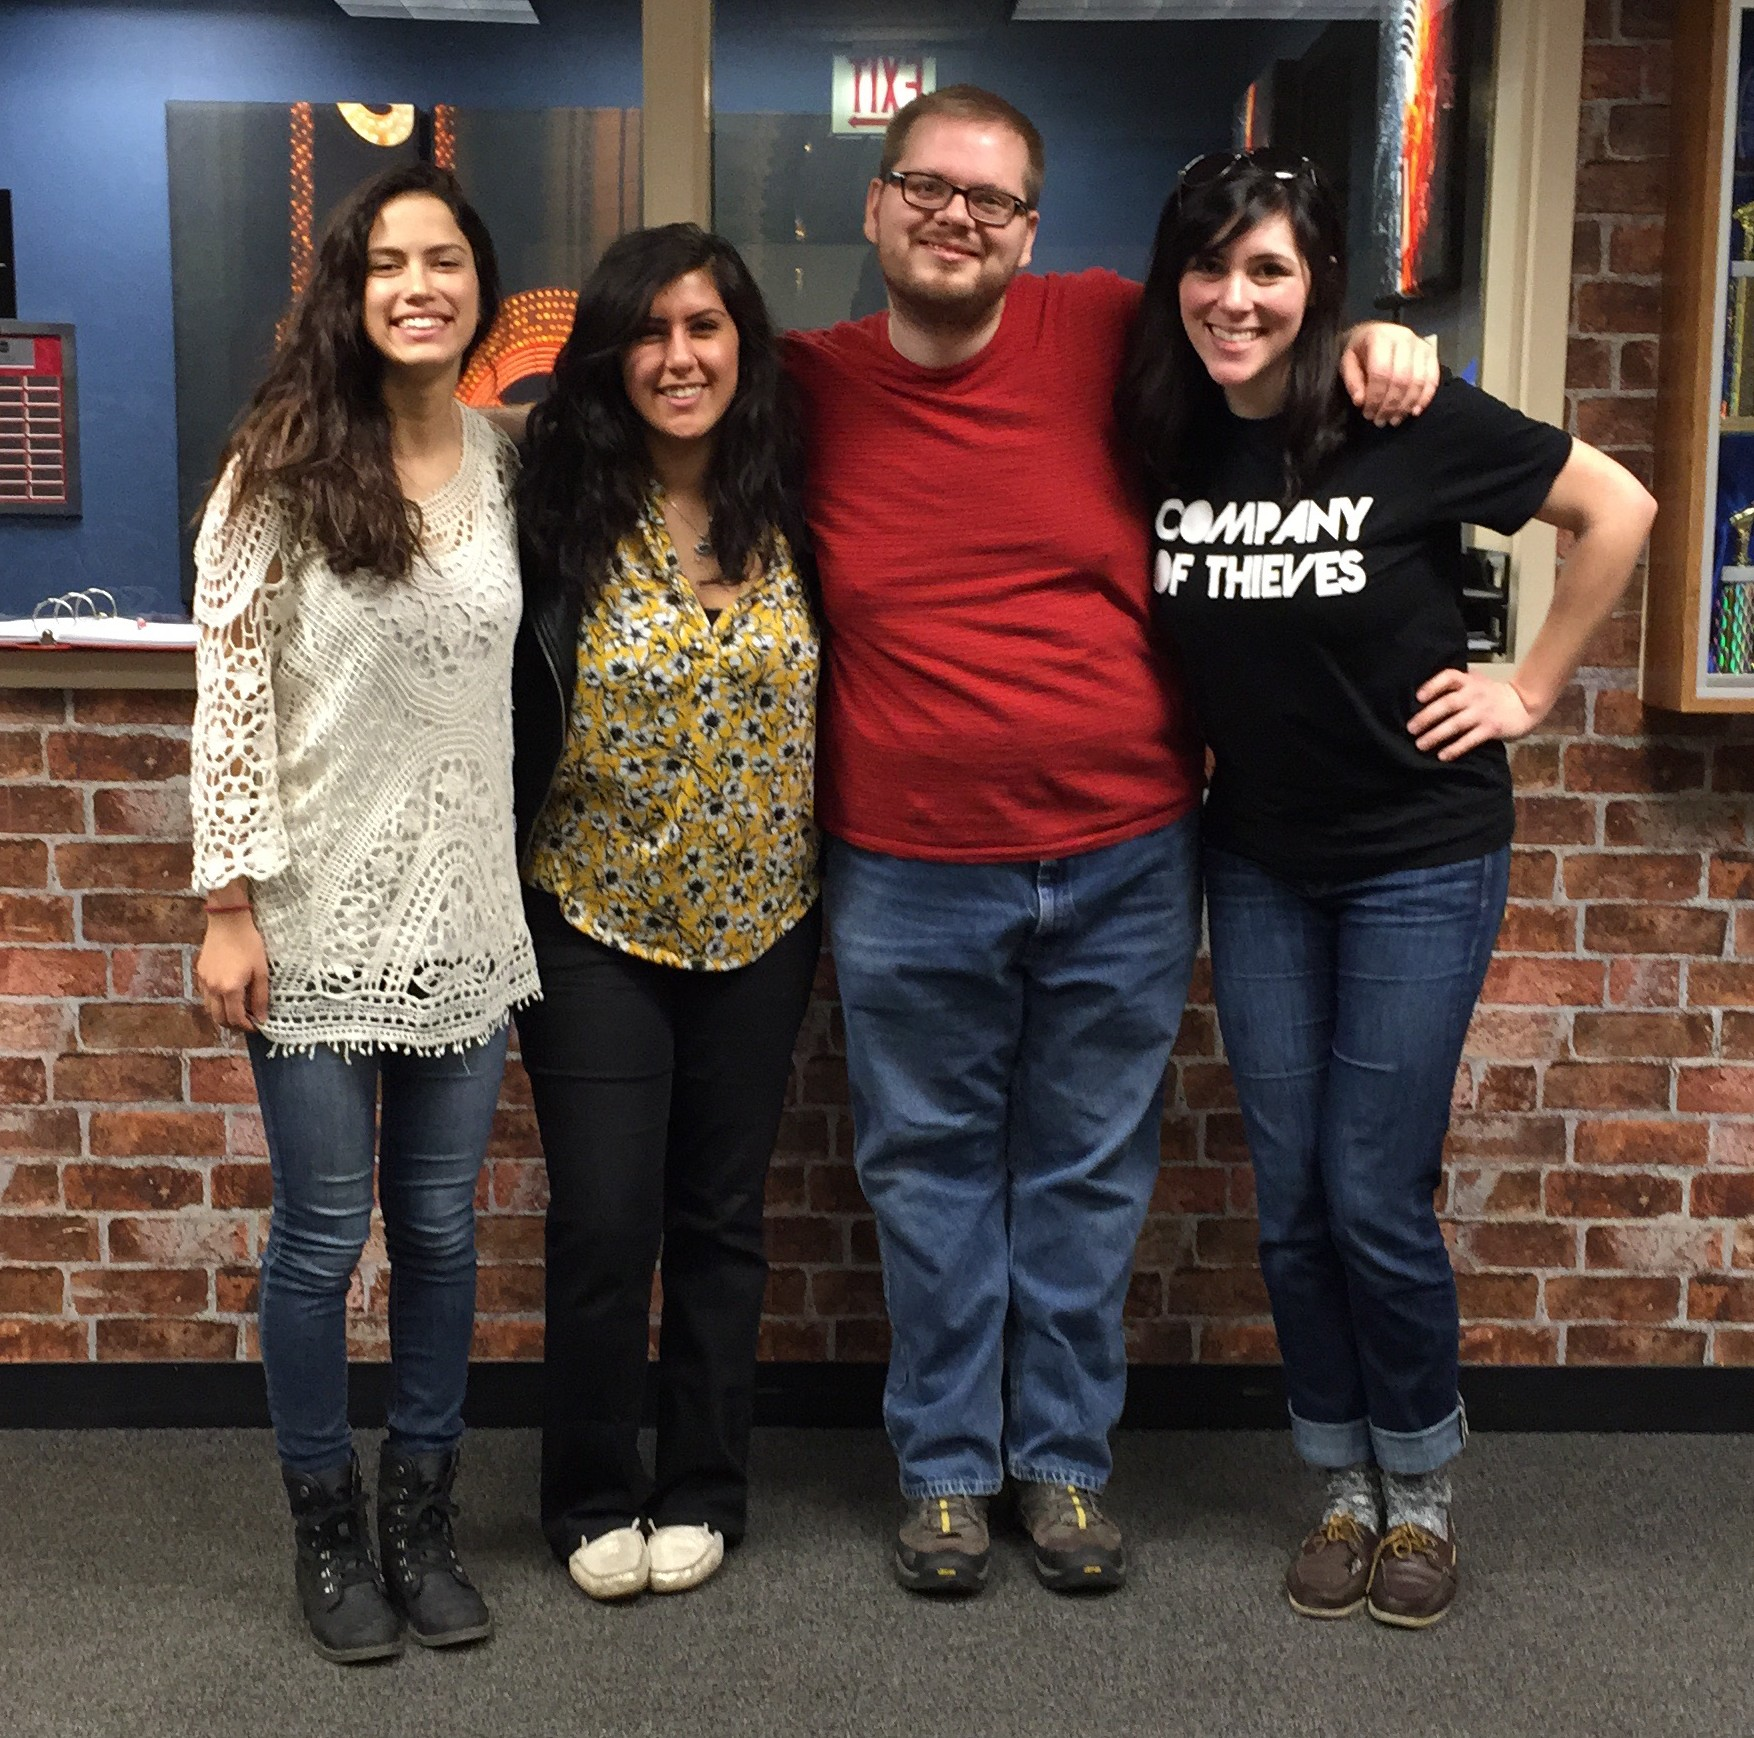 The last episode of the quarter with Scrawl hosts Mariah, Rima, Brandon, and Megan.